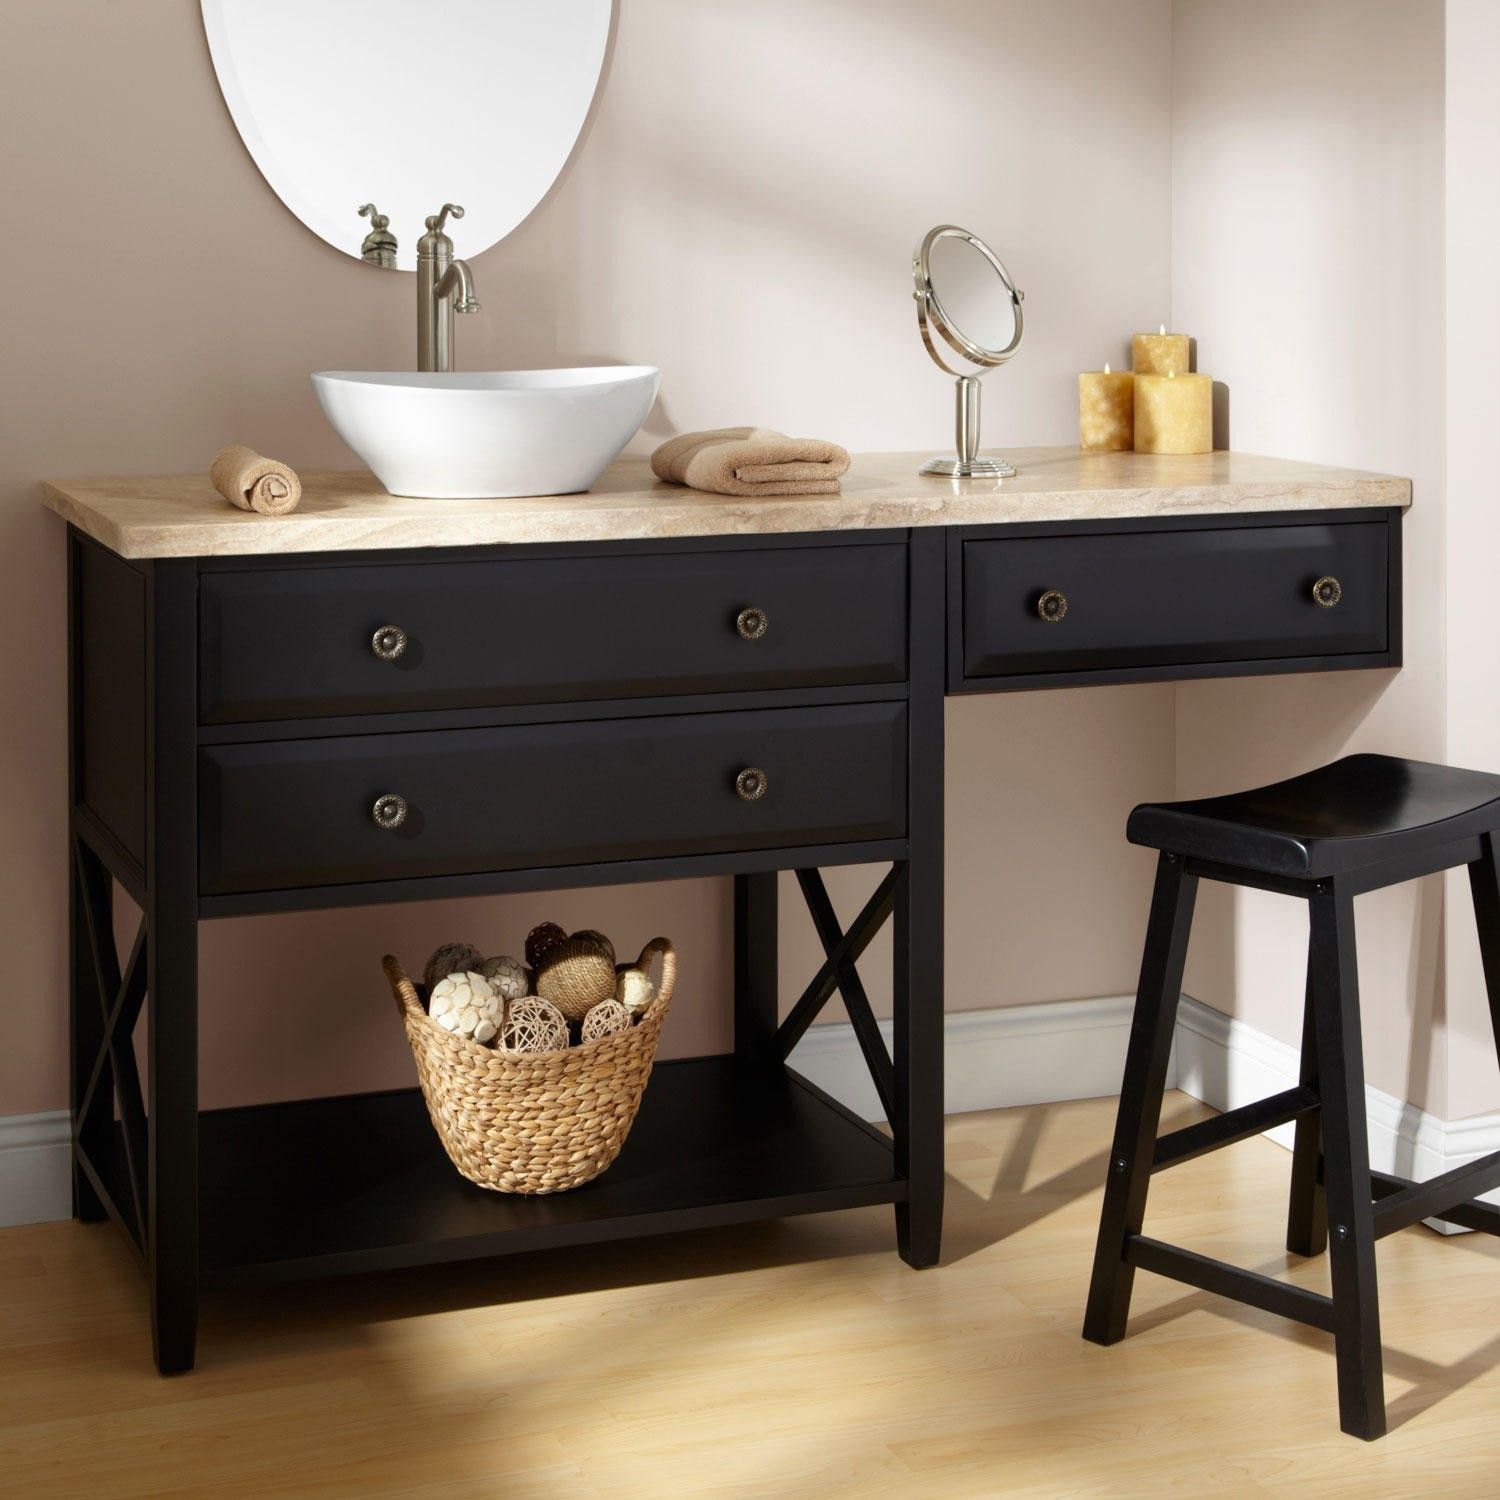 Asian bathroom vanity cabinets - Bathroom Vanity With Makeup Area 60 Clinton Black Vanity For Vessel Sink With Makeup